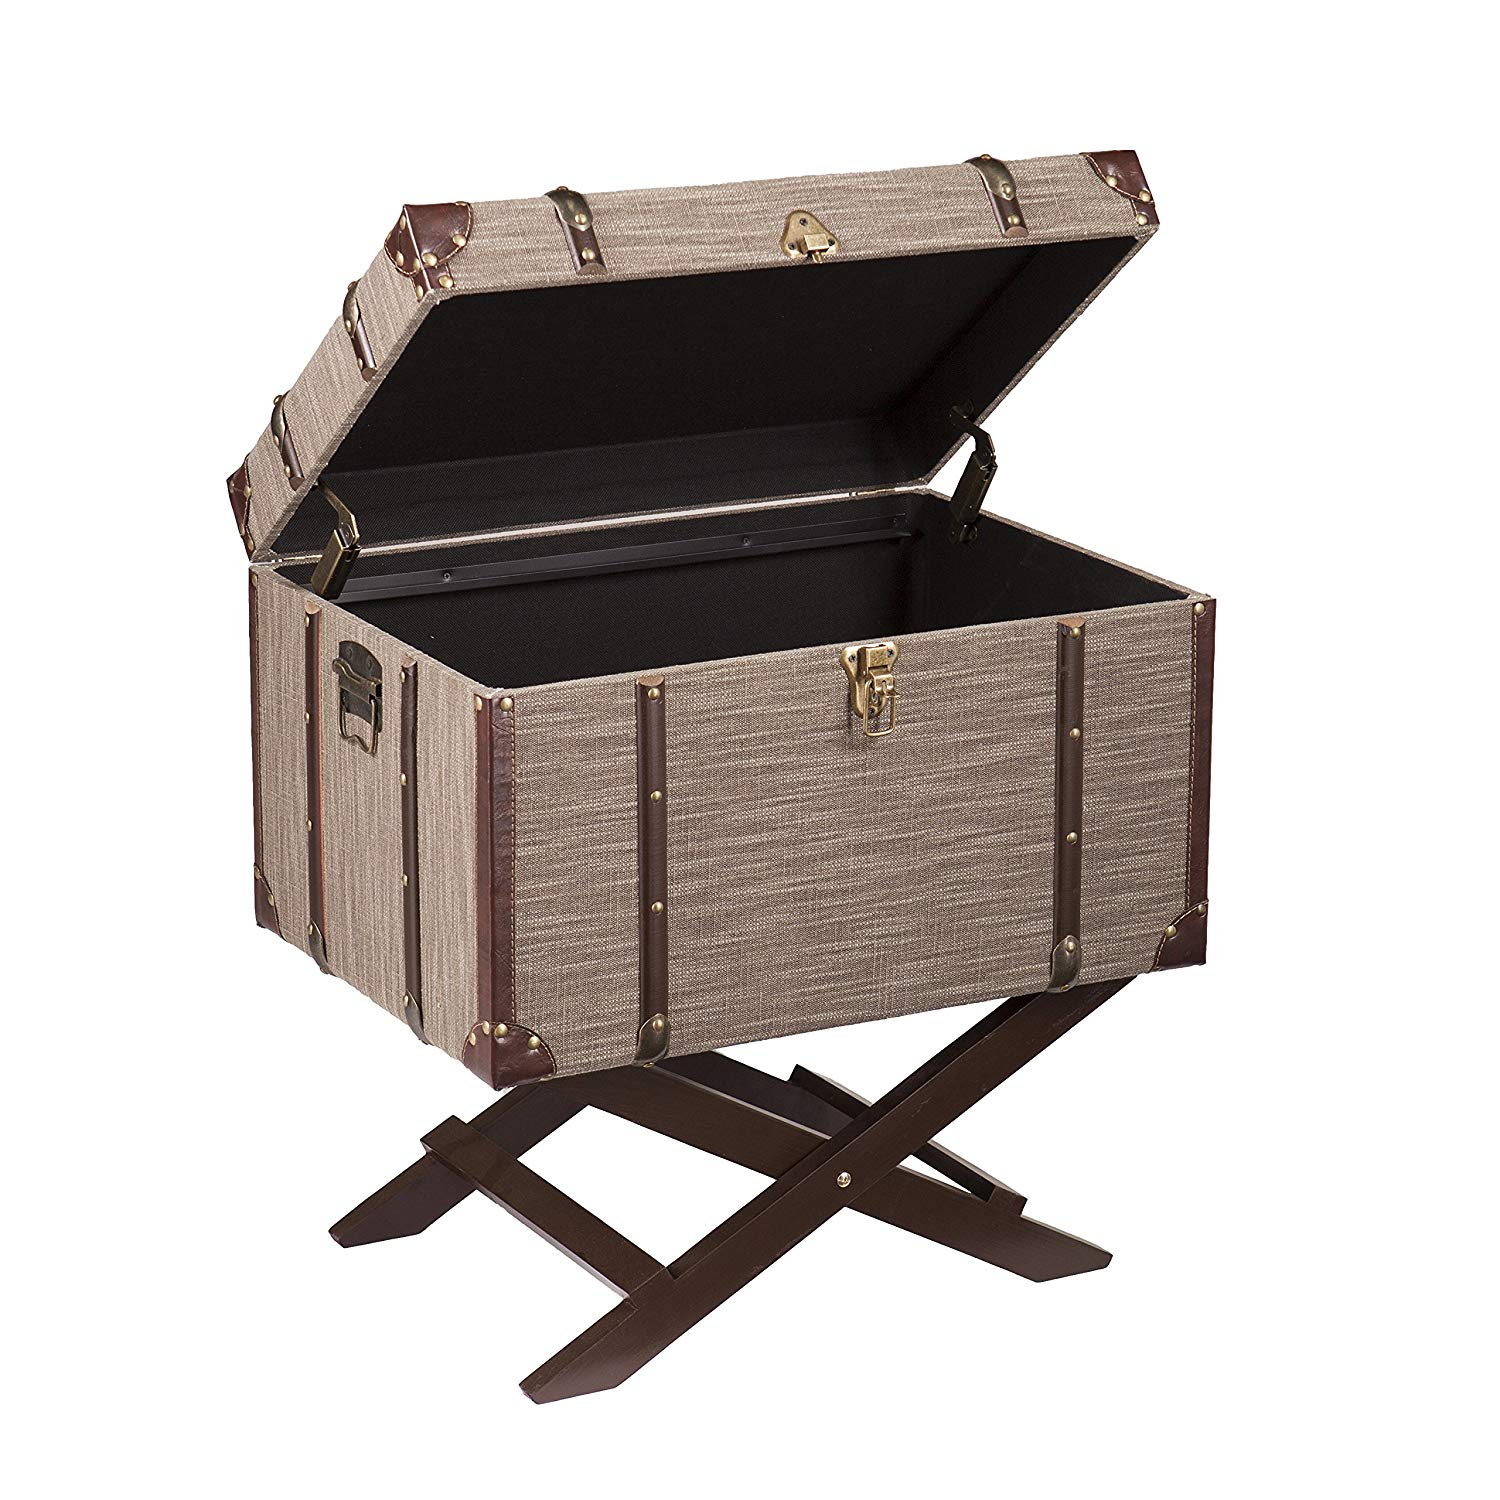 southern enterprises devane accent trunk file storage dml table dark beige linen with chocolate and bronze accents kitchen dining counter height folding door chest distressed